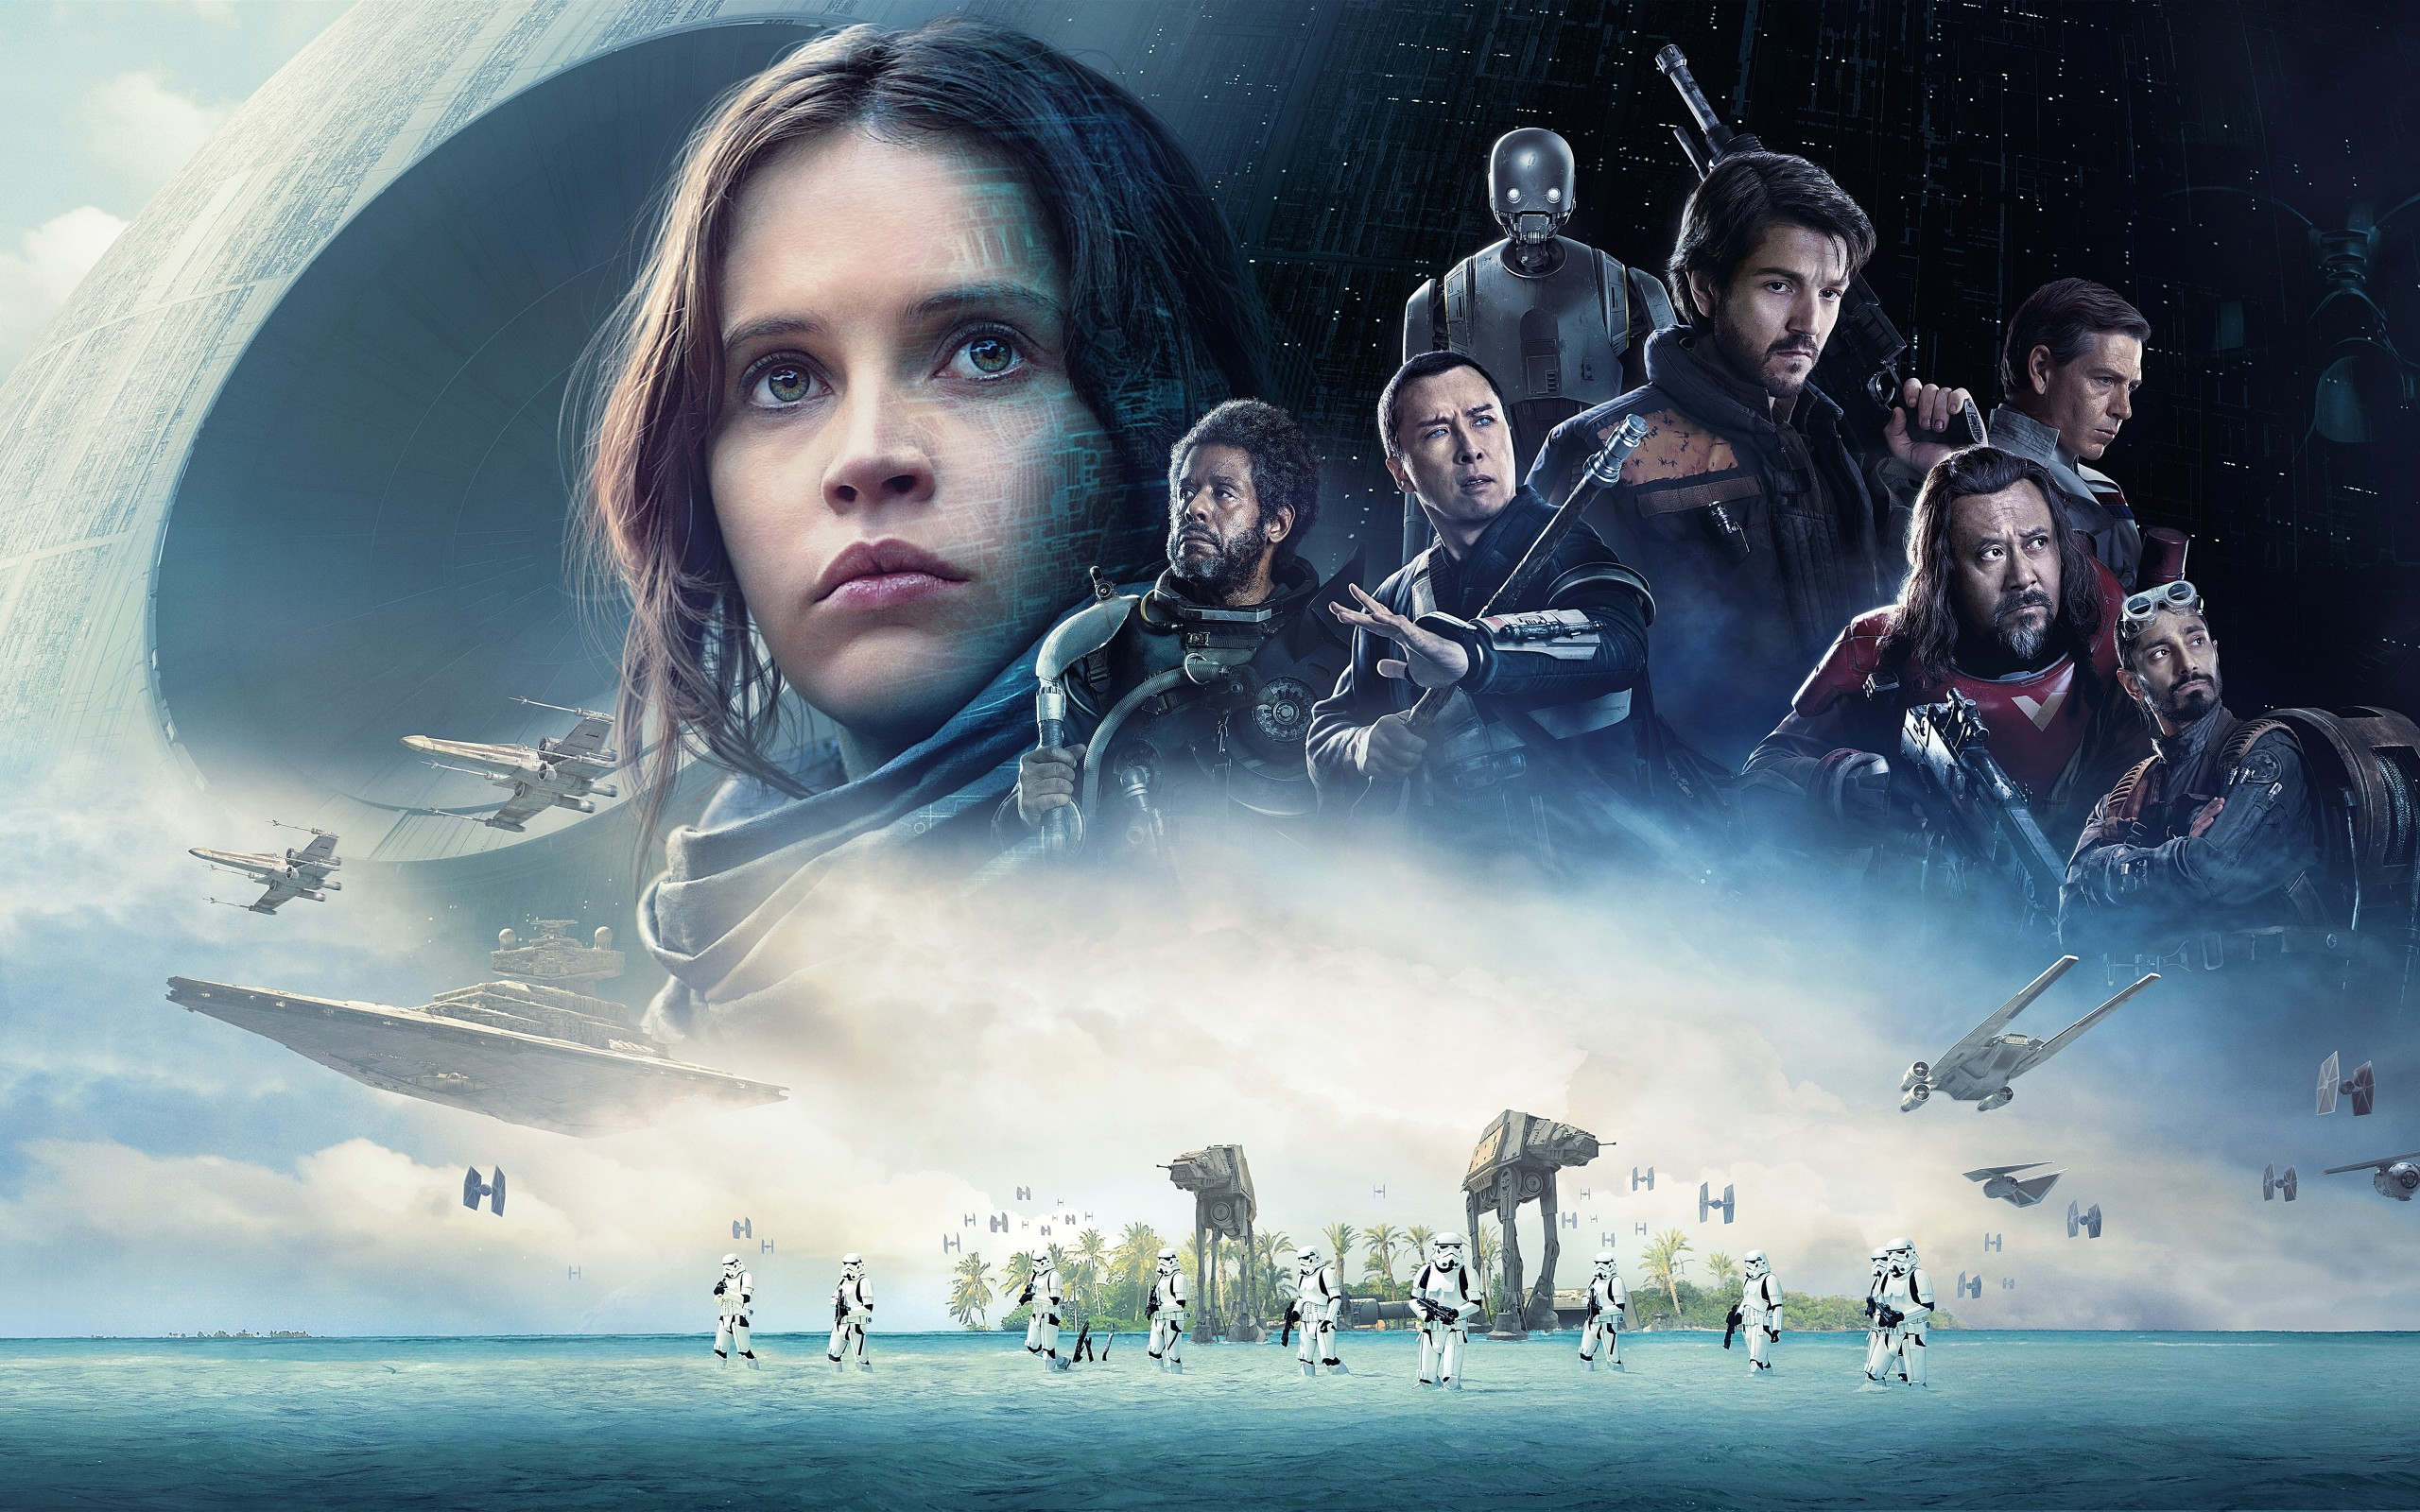 Rogue One Movie Poster, star wars,delaware, sussex county, midway theaters